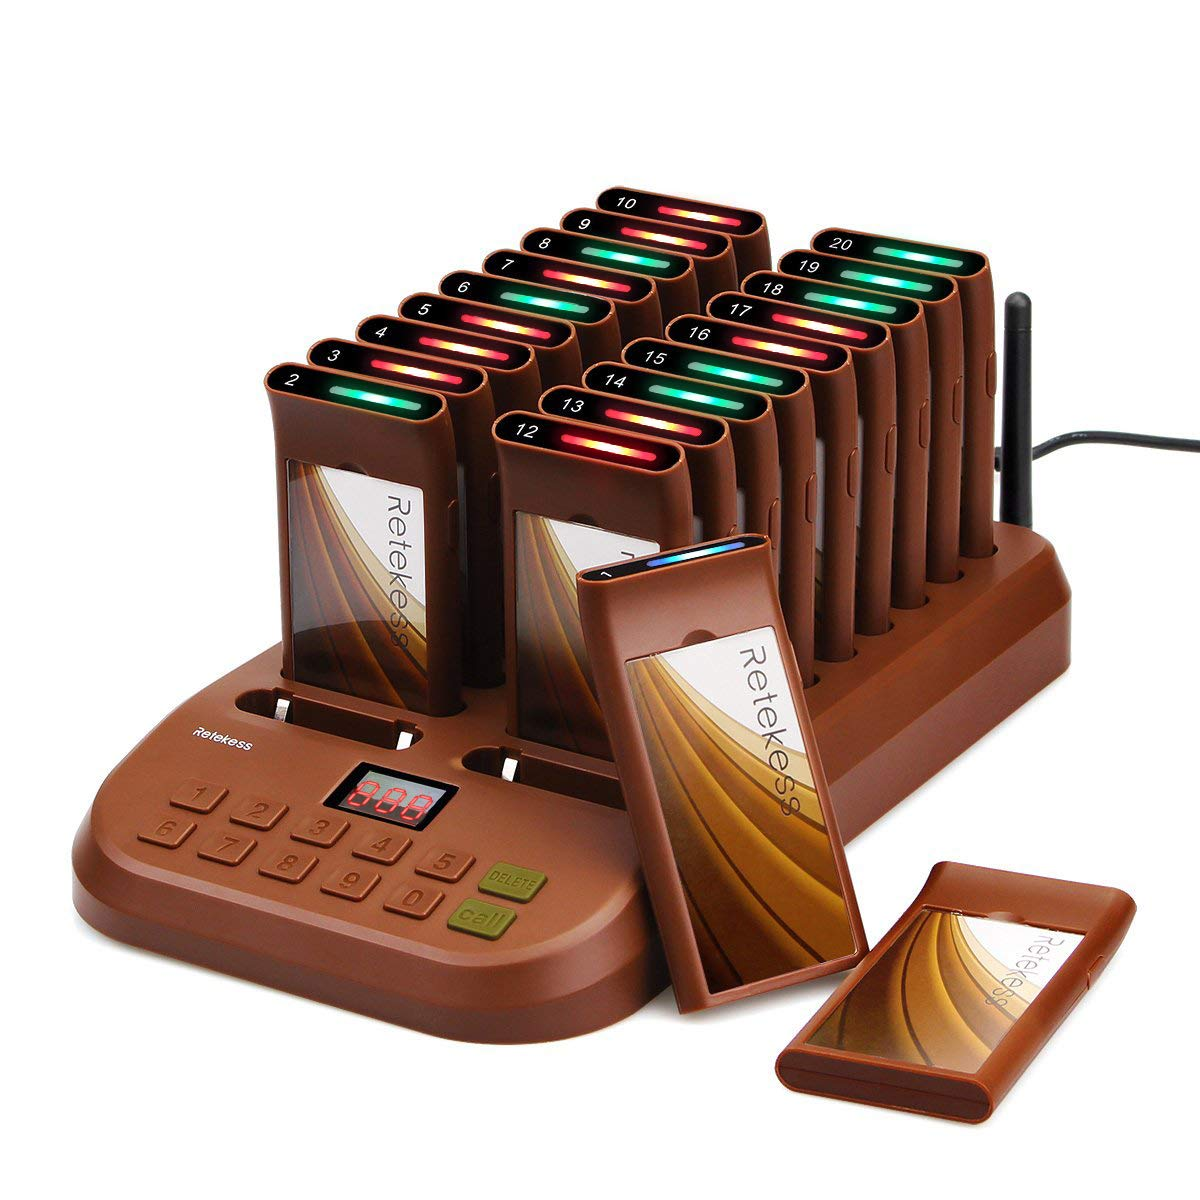 Retekess T116 Pager System Restaurant Pager System Long Range Max. 999 Restaurant Pager with 1 Keypad Transmitter 20 Coaster Pagers for Restaurants